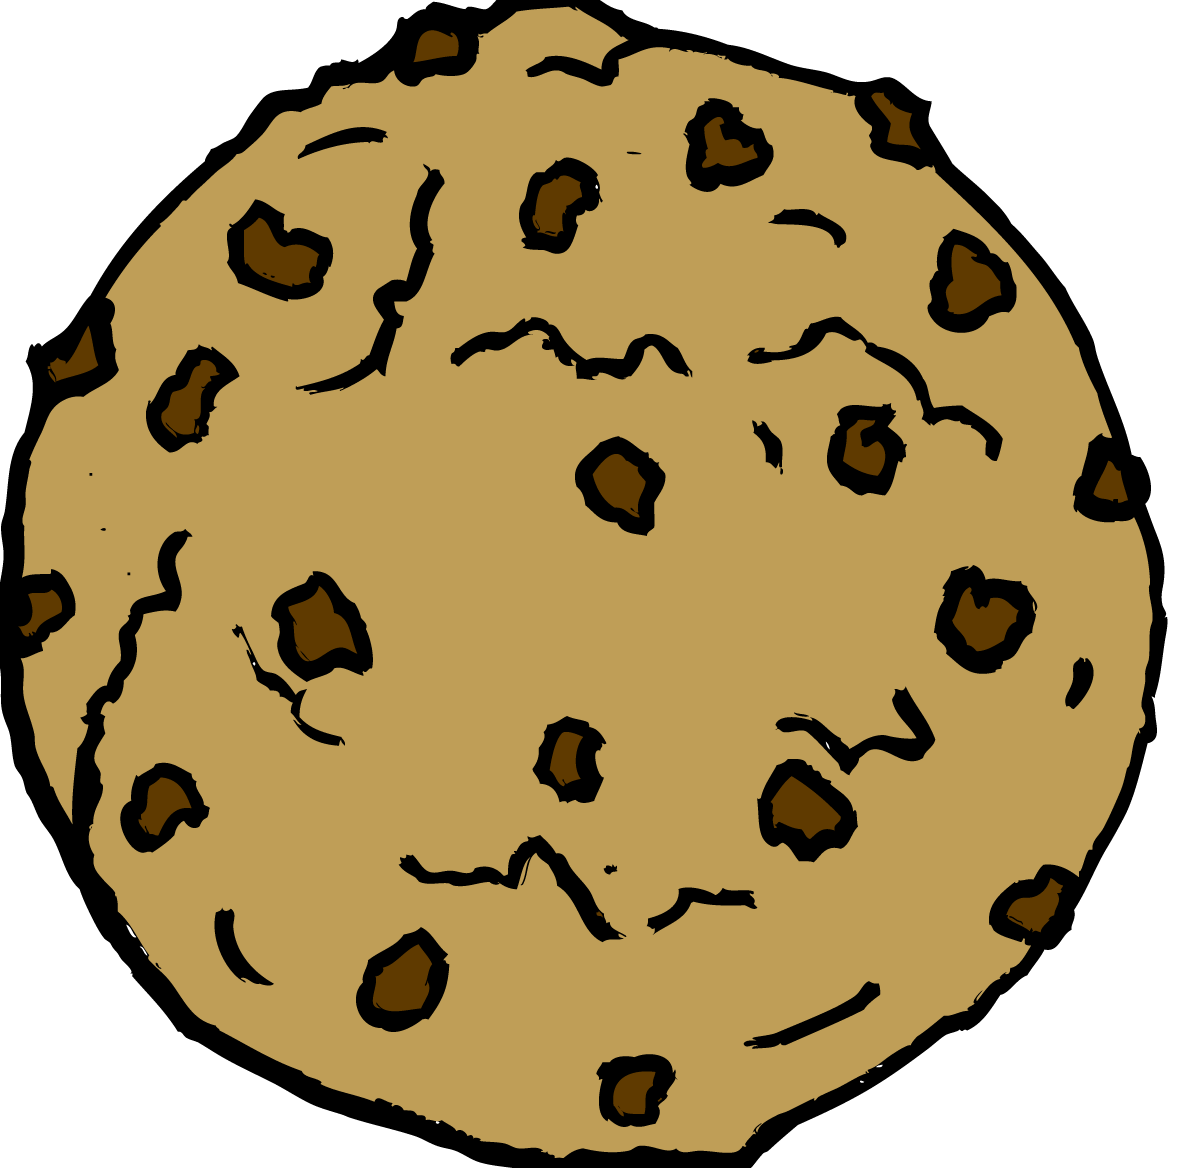 Chocolate Chip Cookie Clipart #15858-Chocolate Chip Cookie Clipart #15858-8